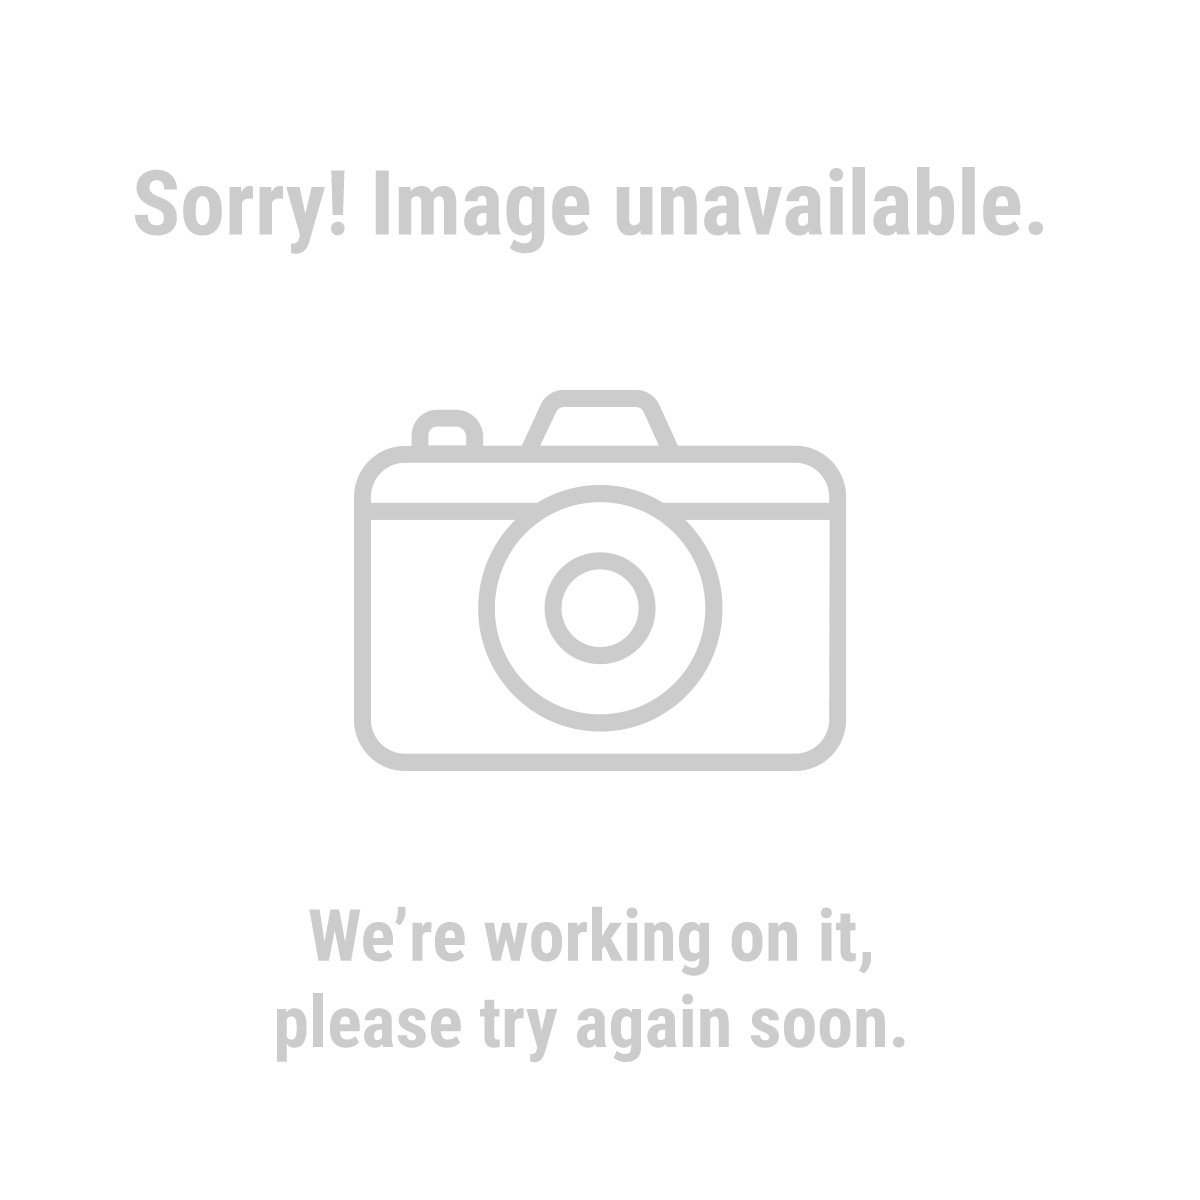 """Warrior 93895 7-1/4"""", 40 Tooth Carbide Tipped Circular Saw Blade with Titanium Nitride Coating"""